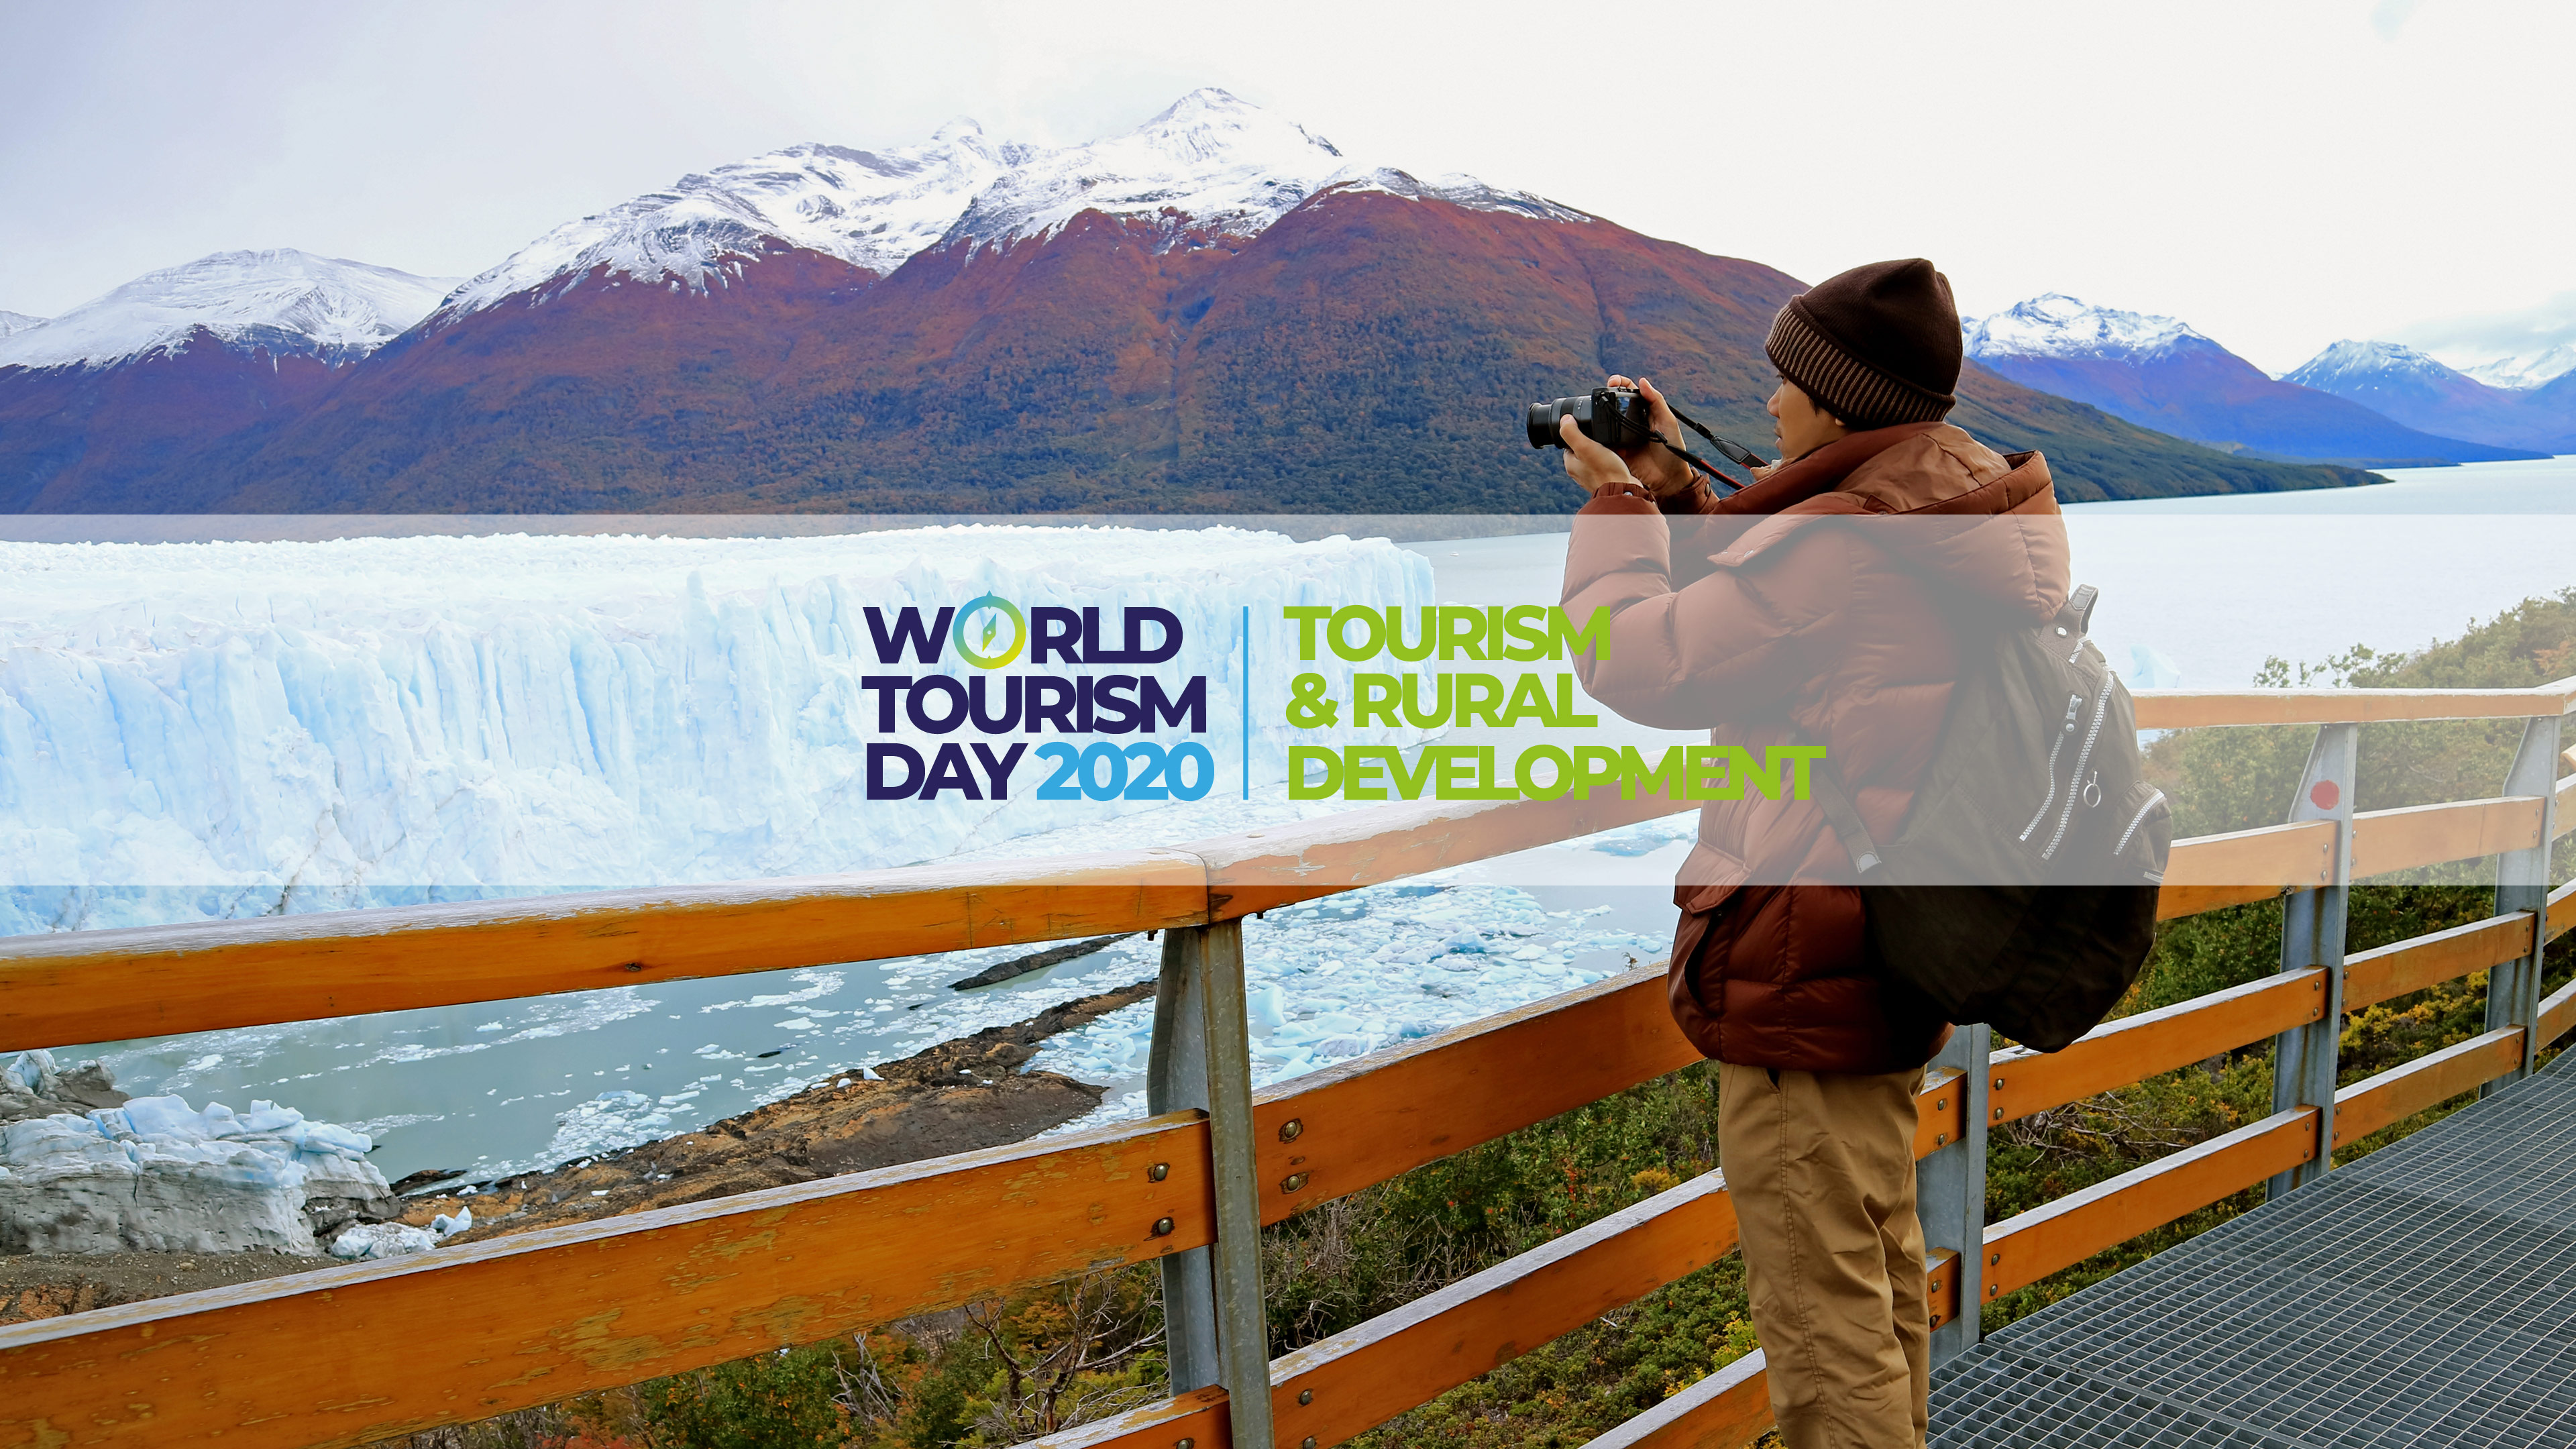 World Tourism Day 2020